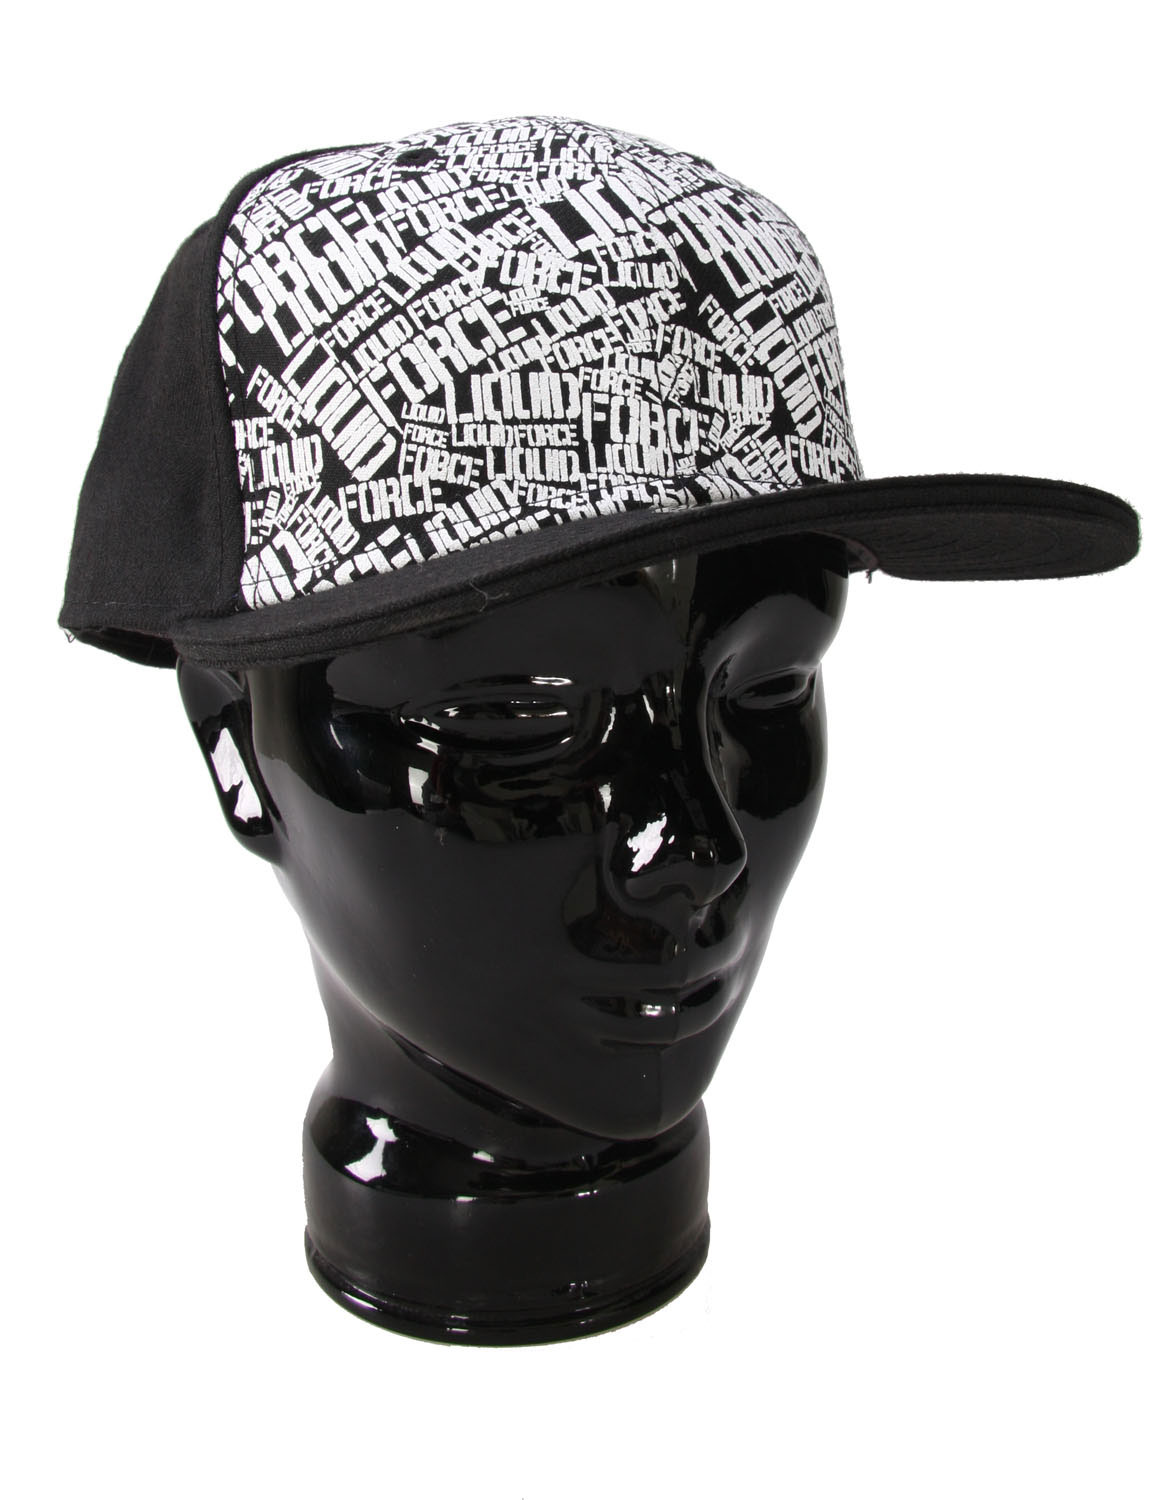 The Liquid Force Rush Hour Hat - New Era Fitted Cap / Printed Front with Embroidered Back - $9.95